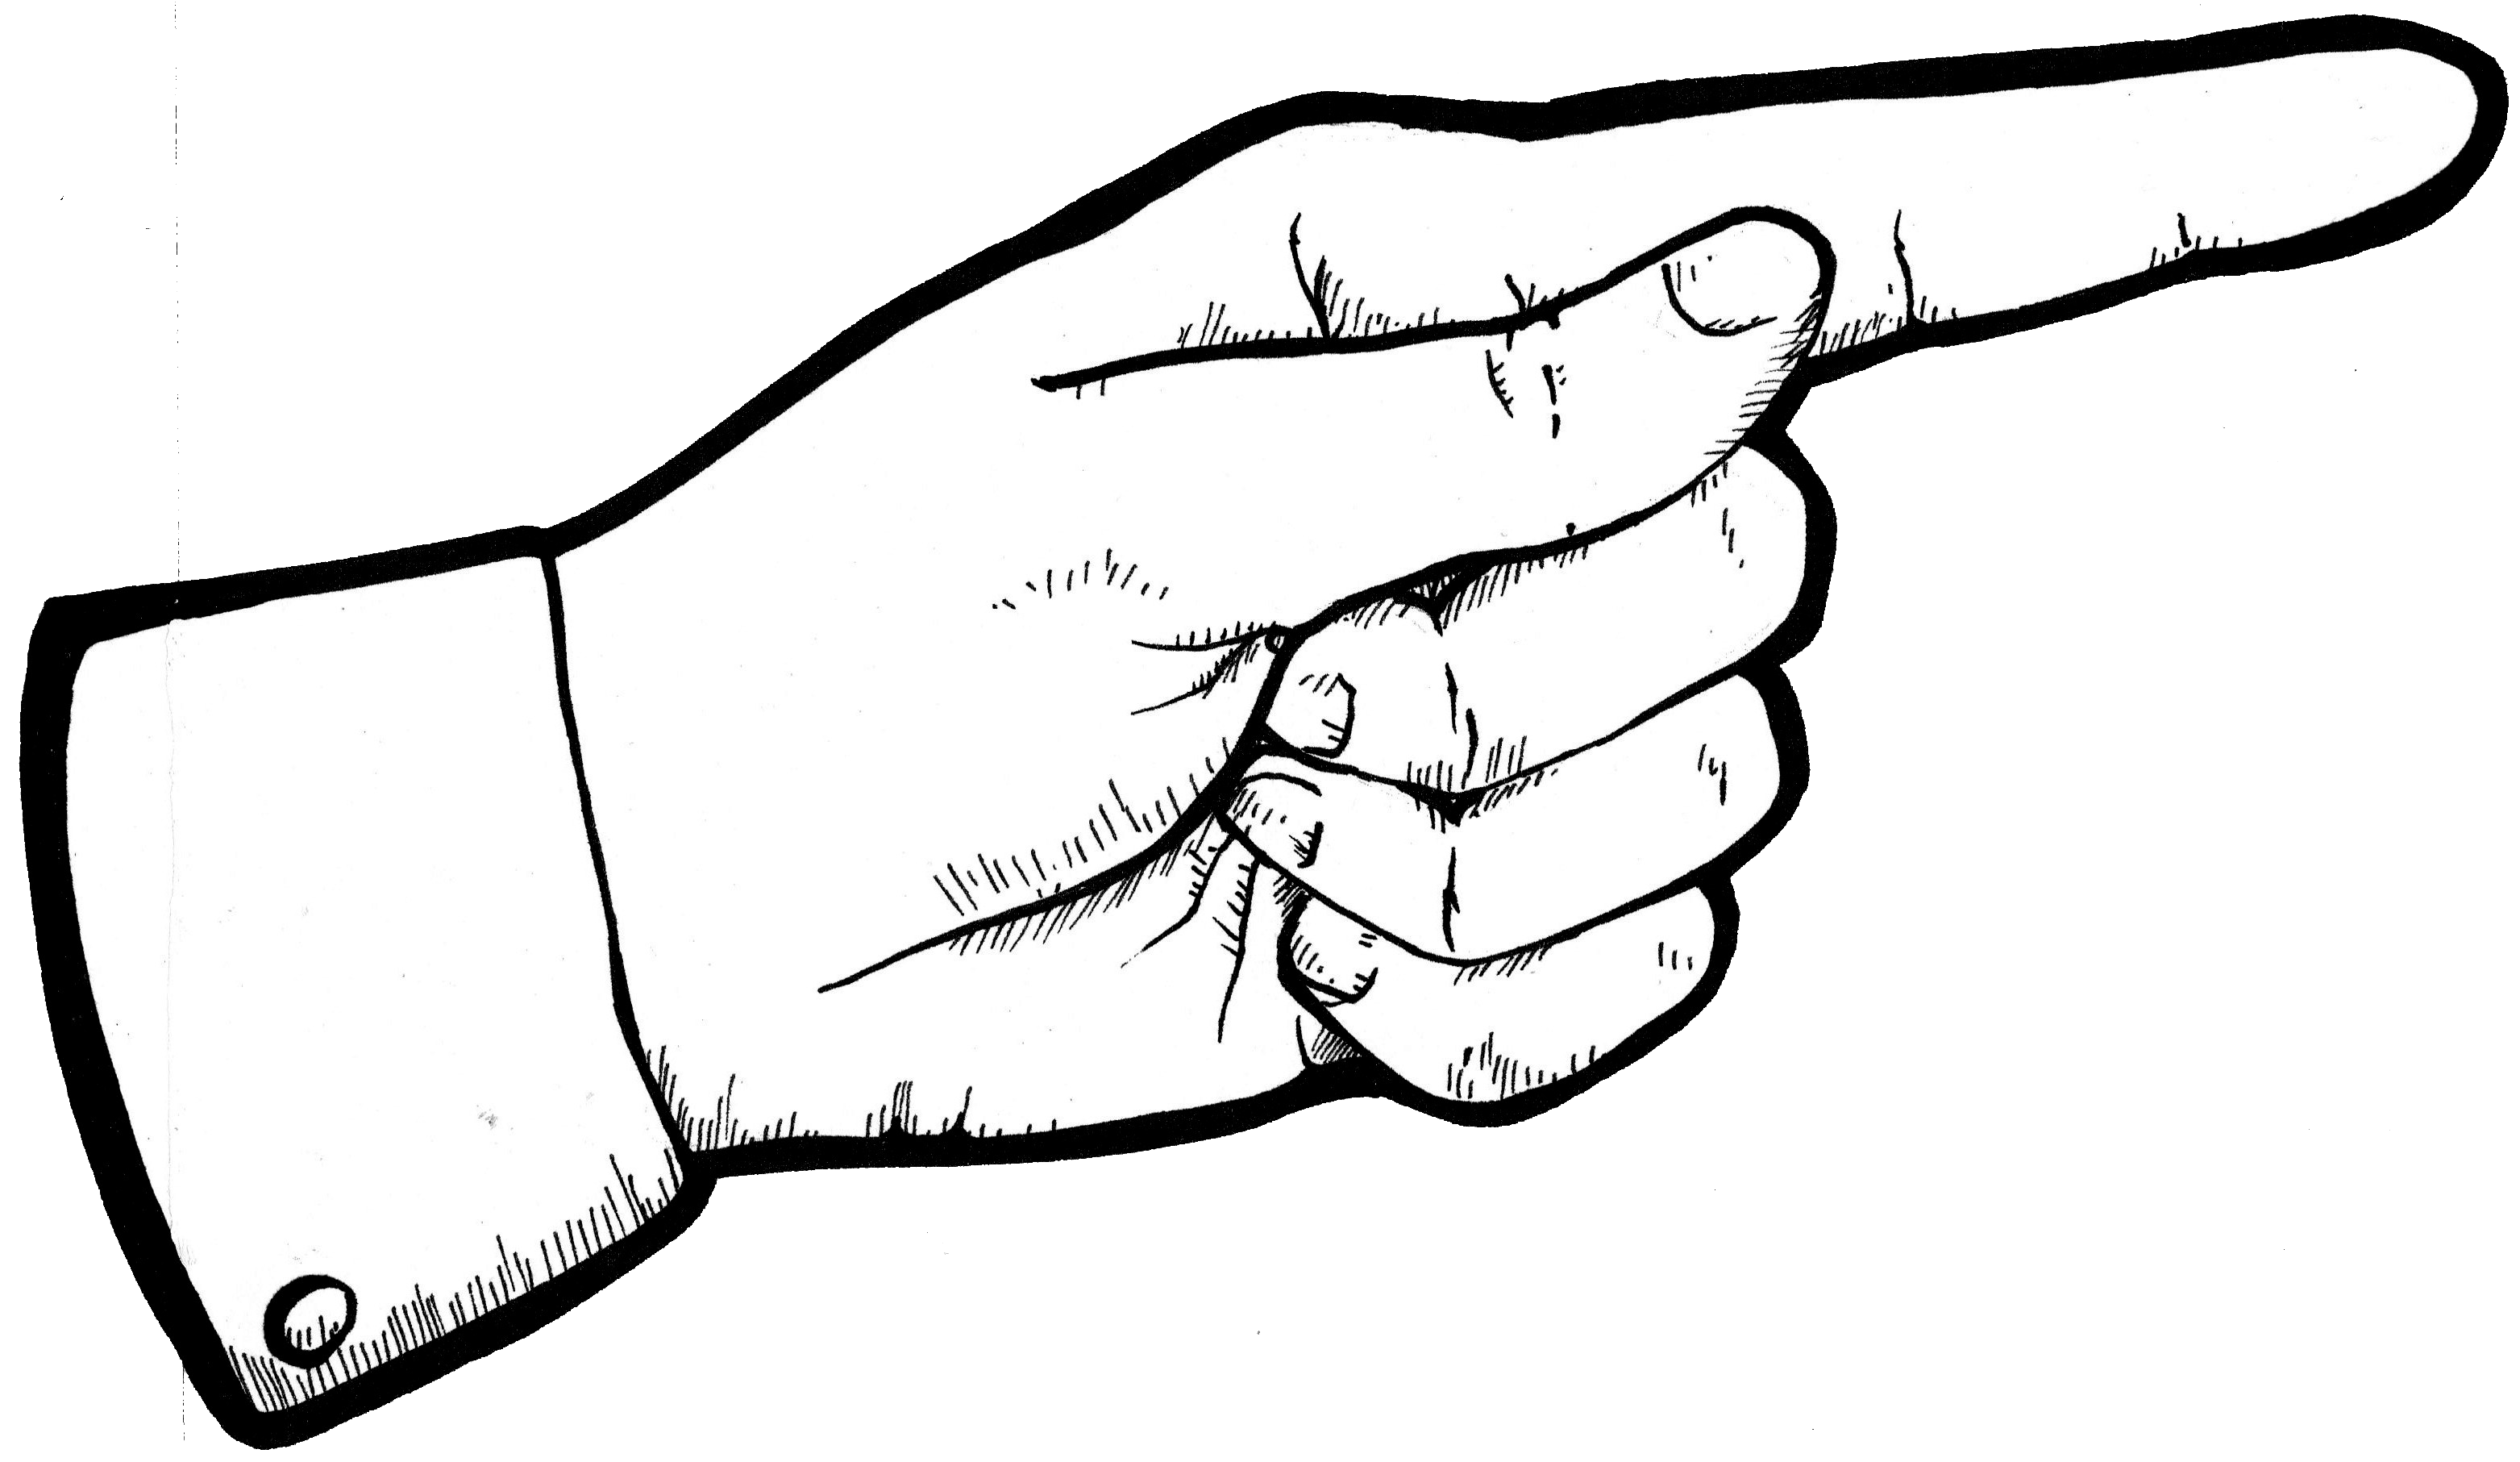 vector library library Pointing Finger Drawing at GetDrawings